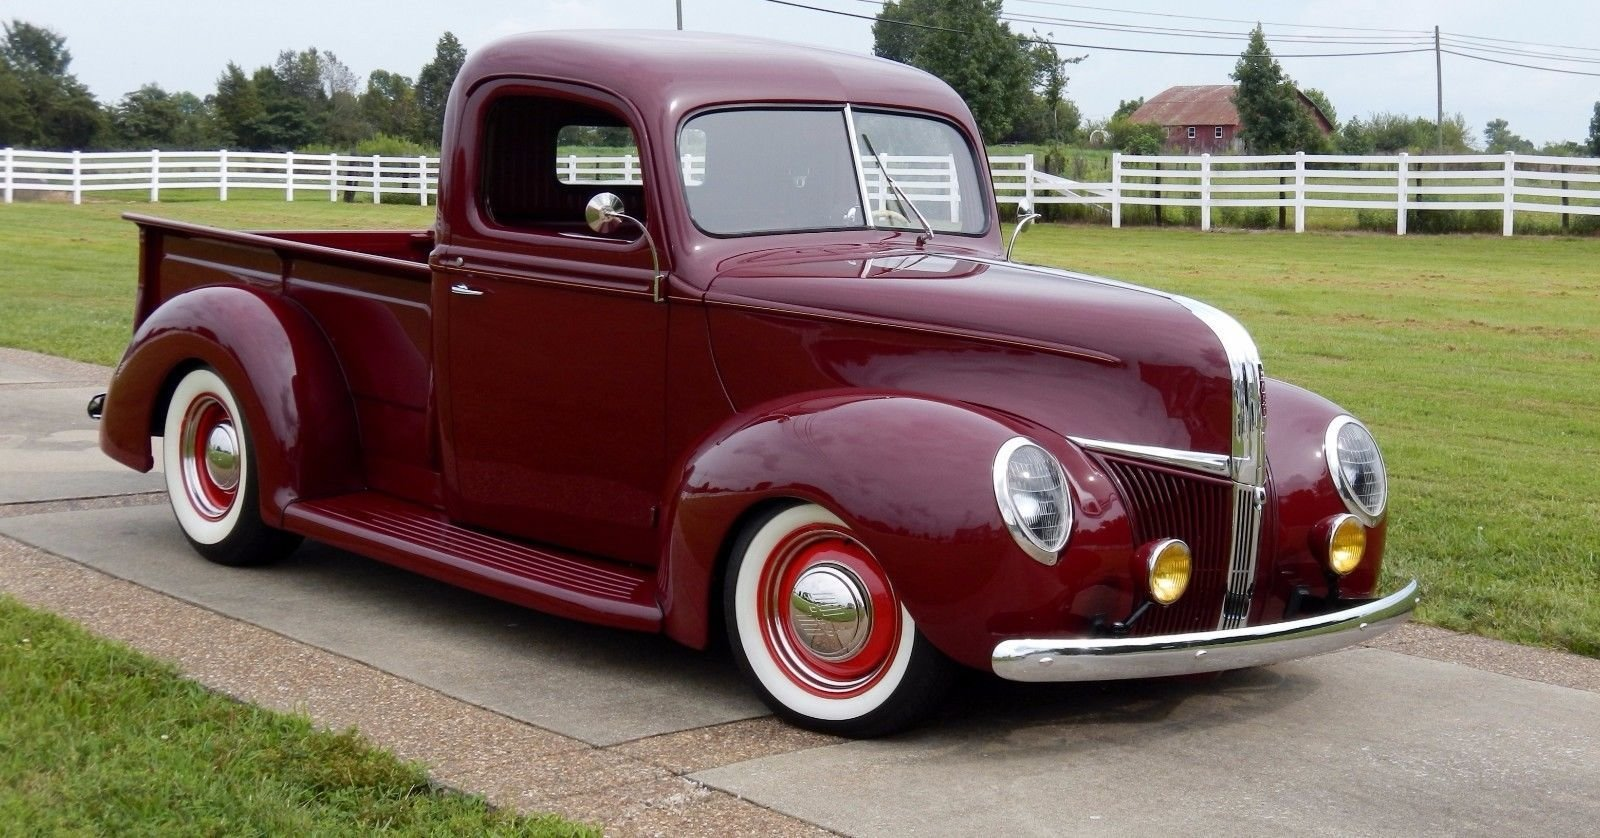 Latest Timeless Classic 1940 Ford Truck Hot Rod For Sale Free Download Original 1024 x 768